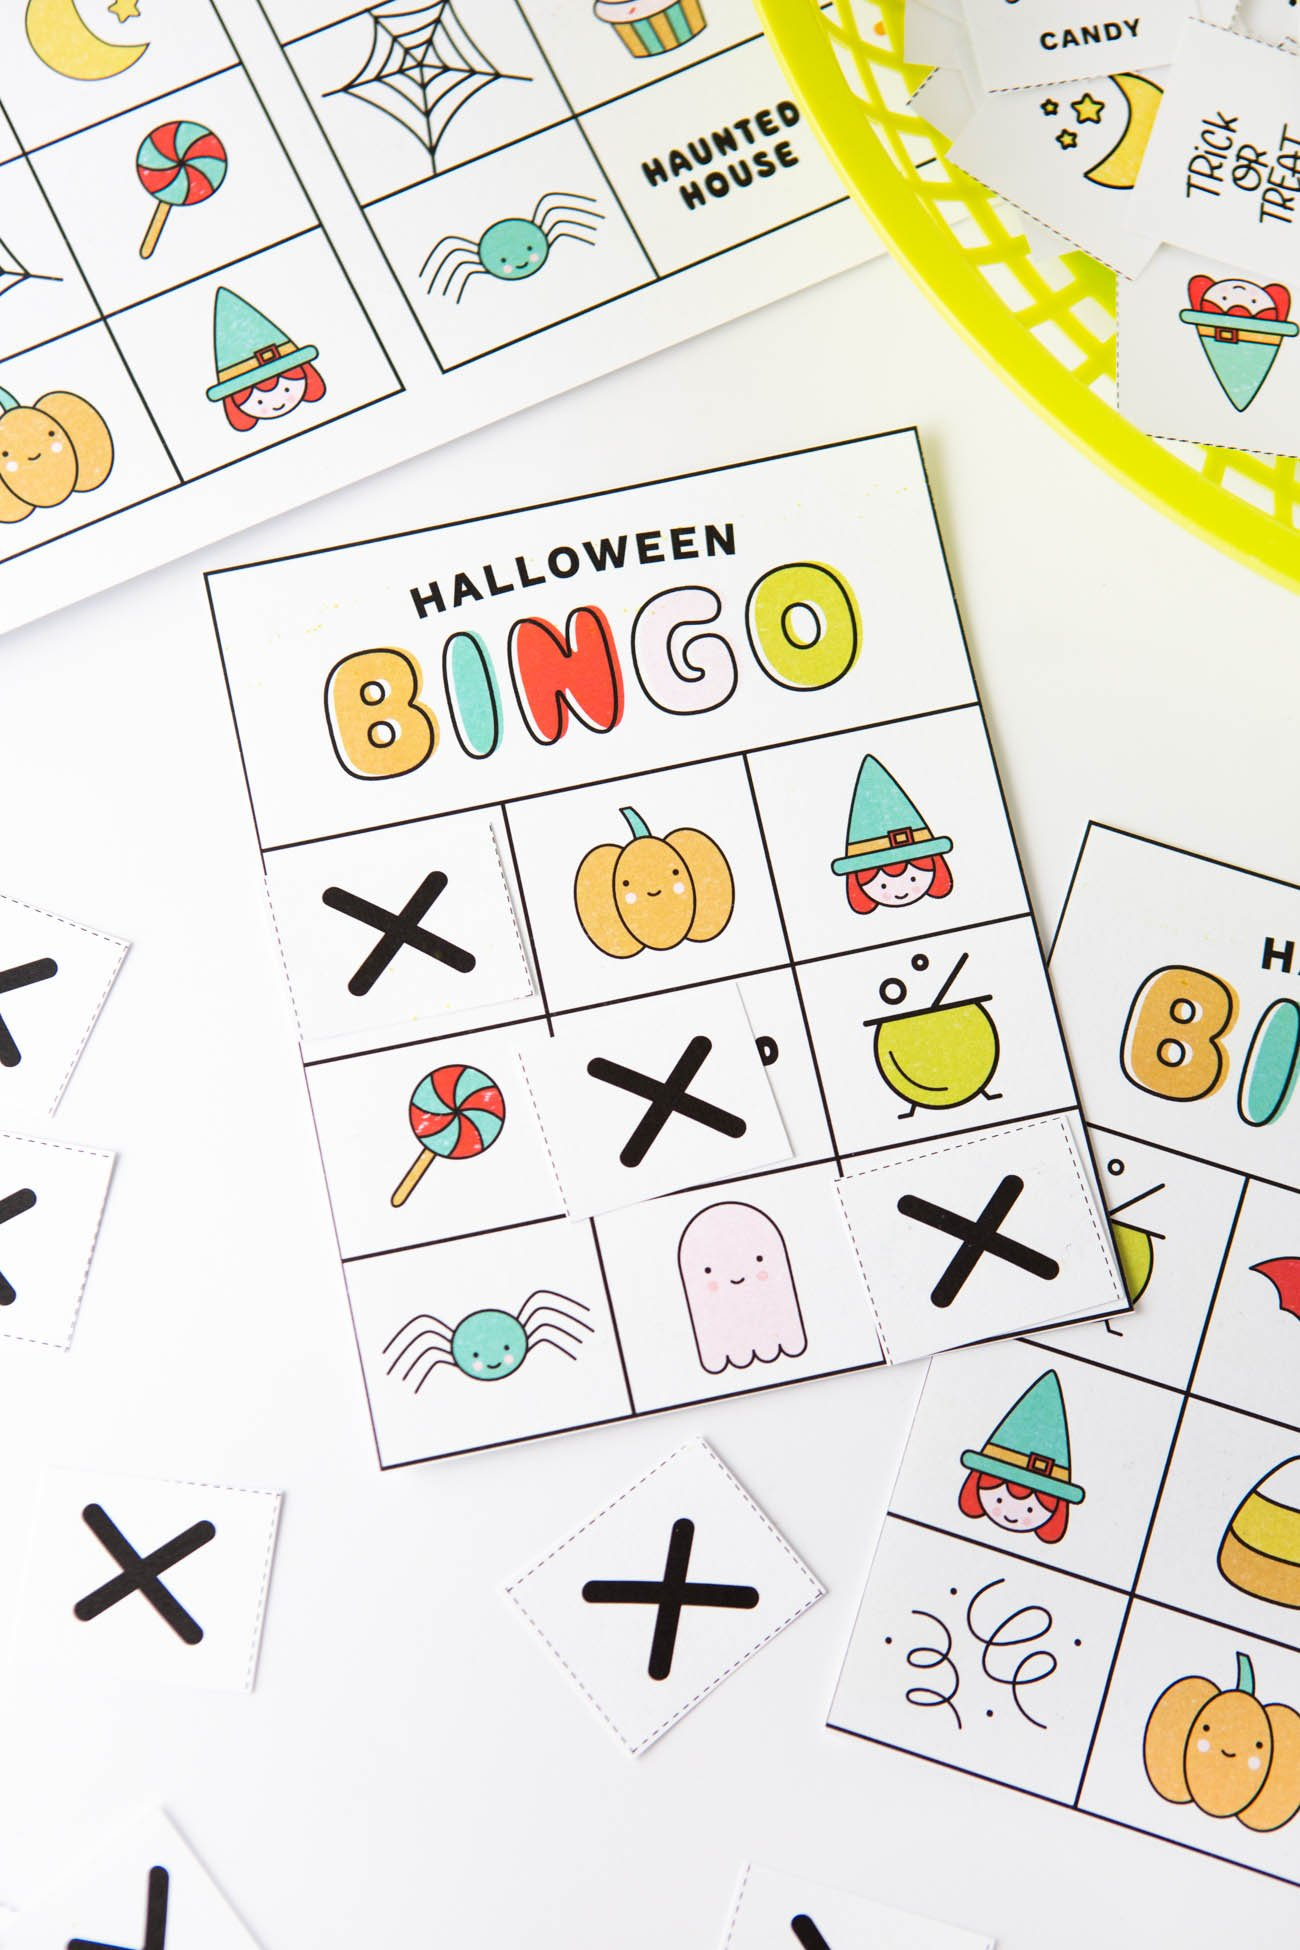 image regarding Printable Halloween Bingo Cards named Cost-free Printable Halloween Bingo Playing cards - Style Take in Repeat